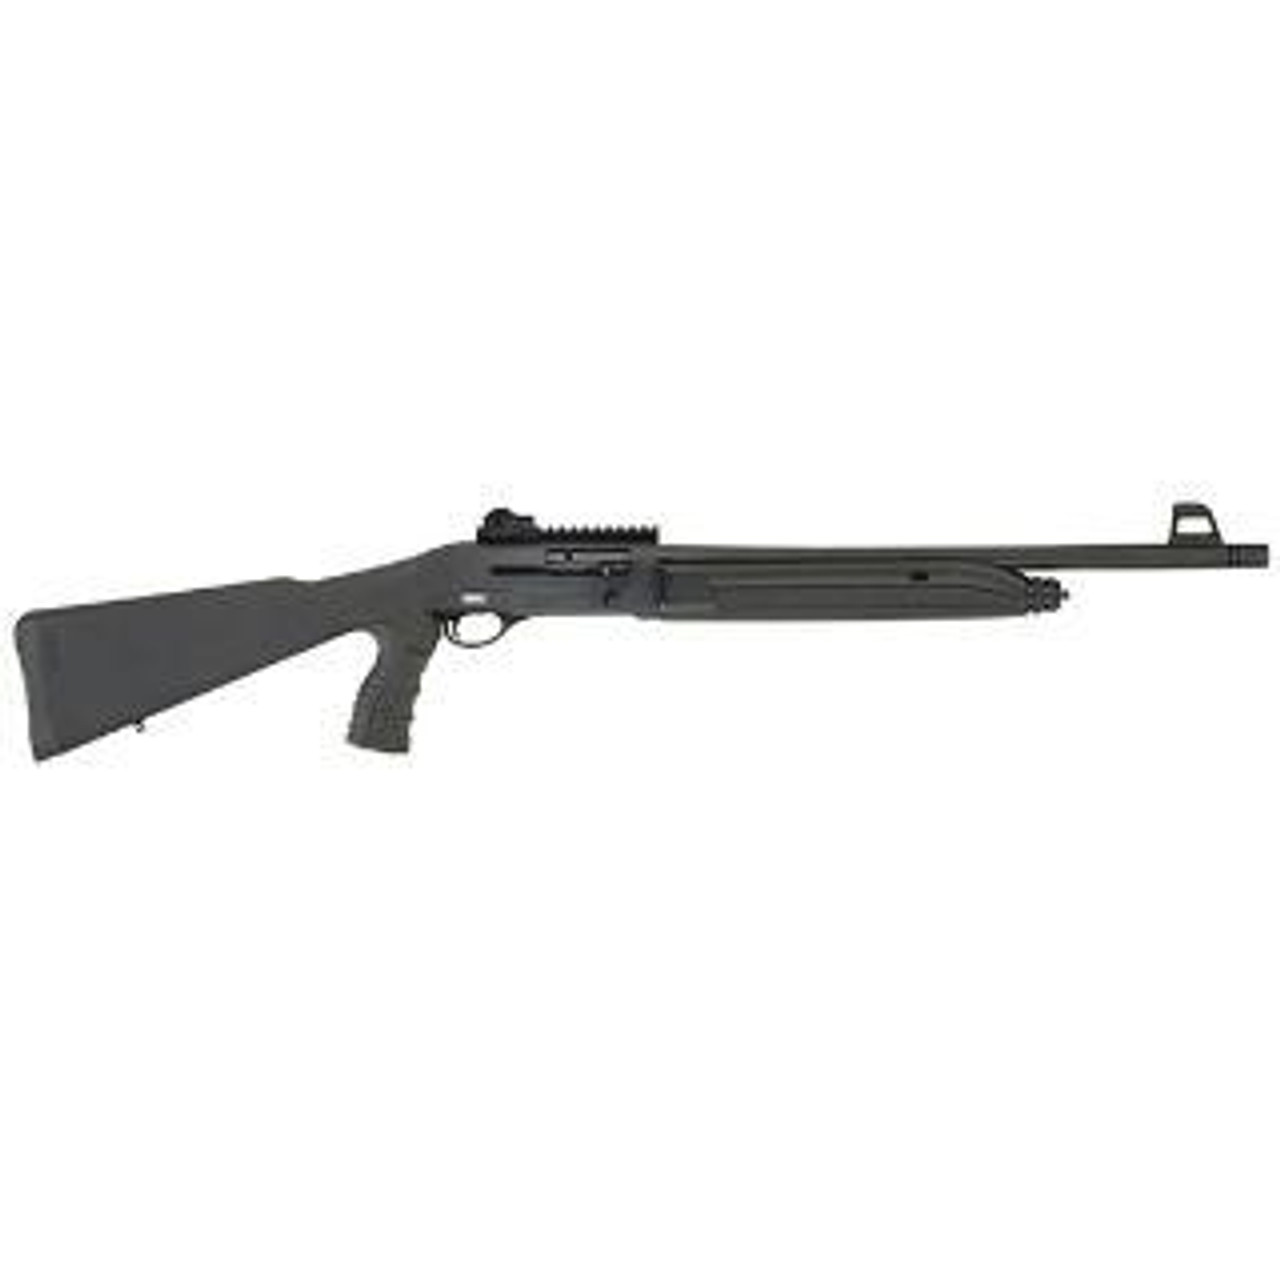 Tristar Raptor CALIFORNIA LEGAL - 12ga